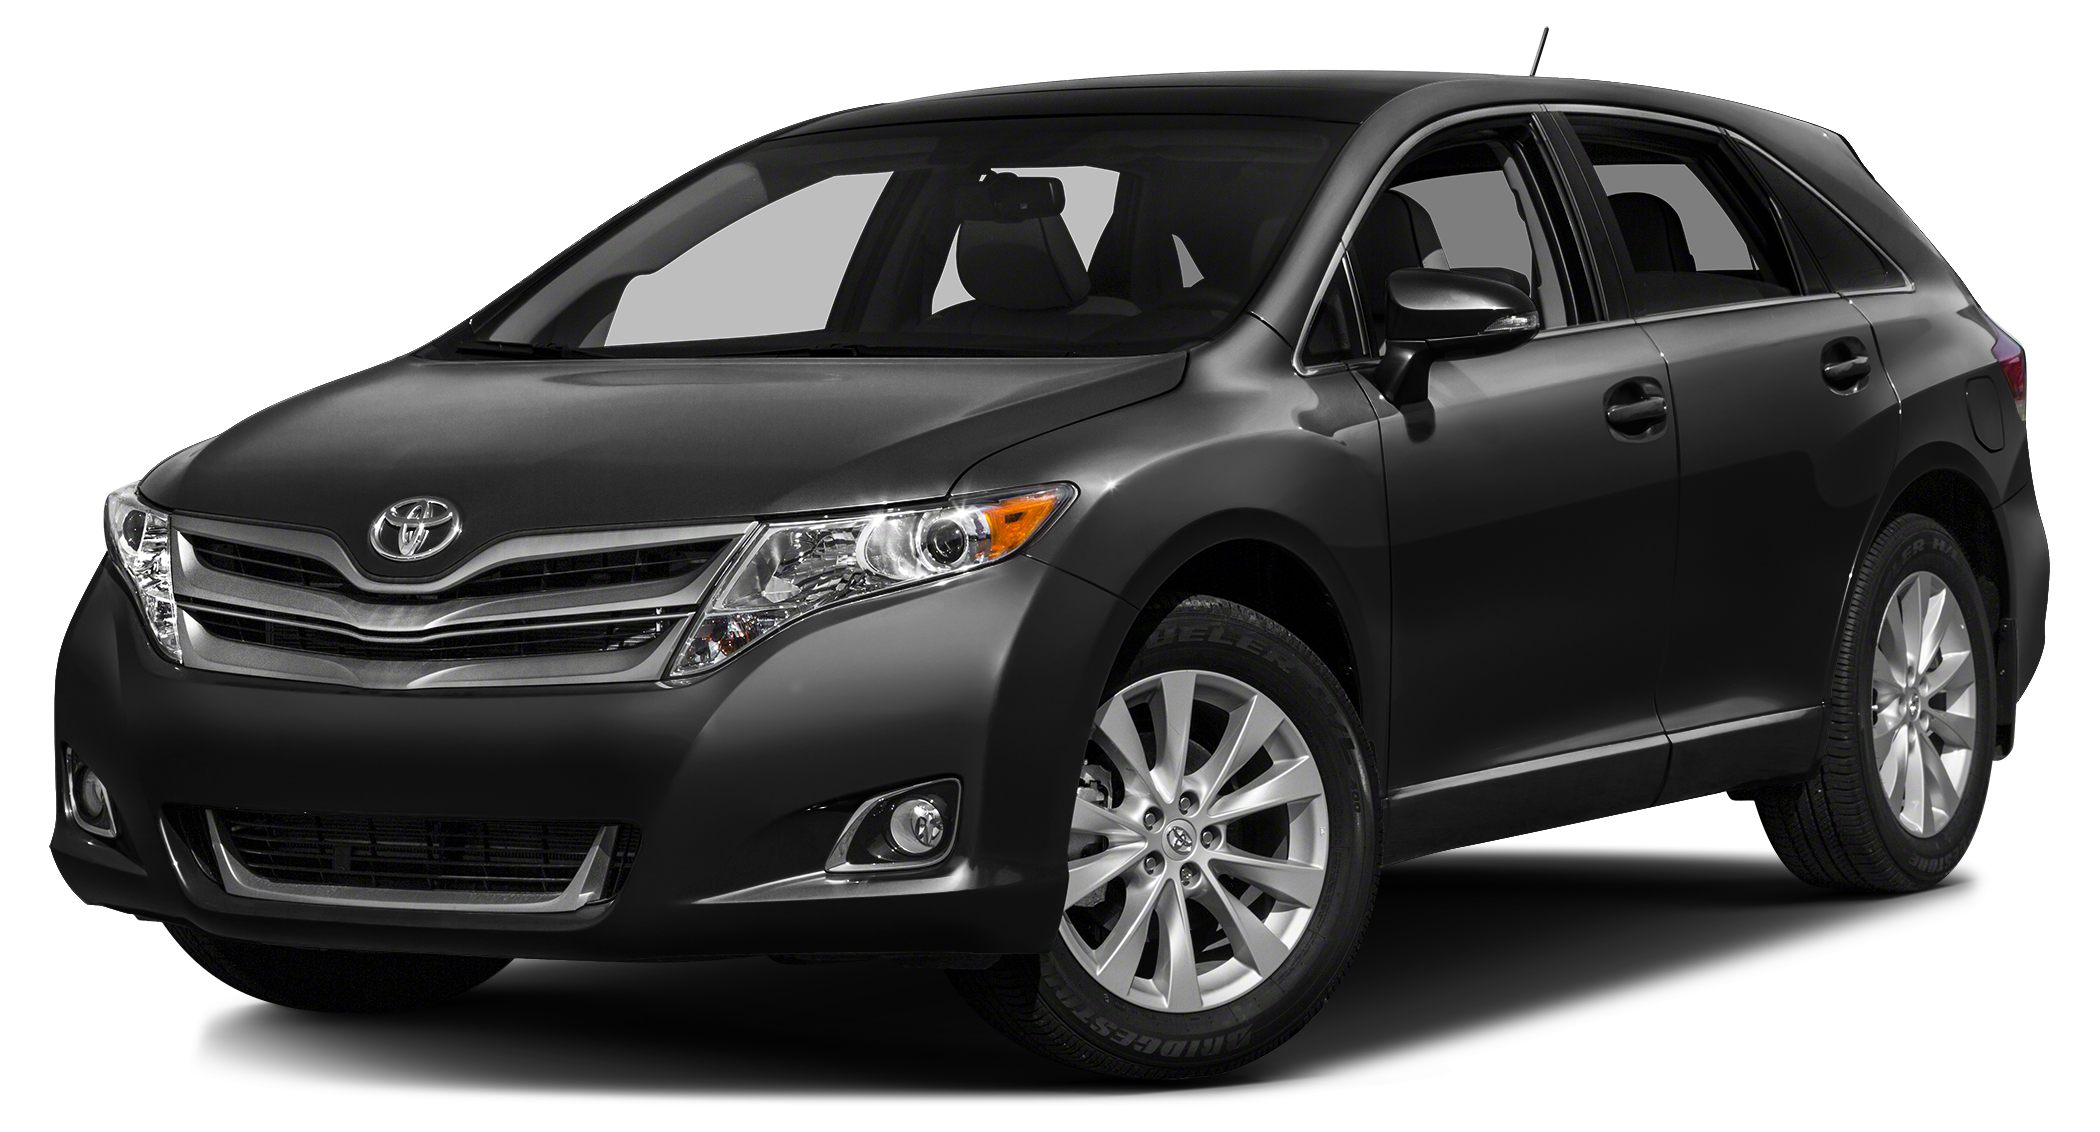 2014 Toyota Venza Limited CARFAX 1-Owner PRICED TO MOVE 2200 below Kelley Blue Book EPA 25 MP